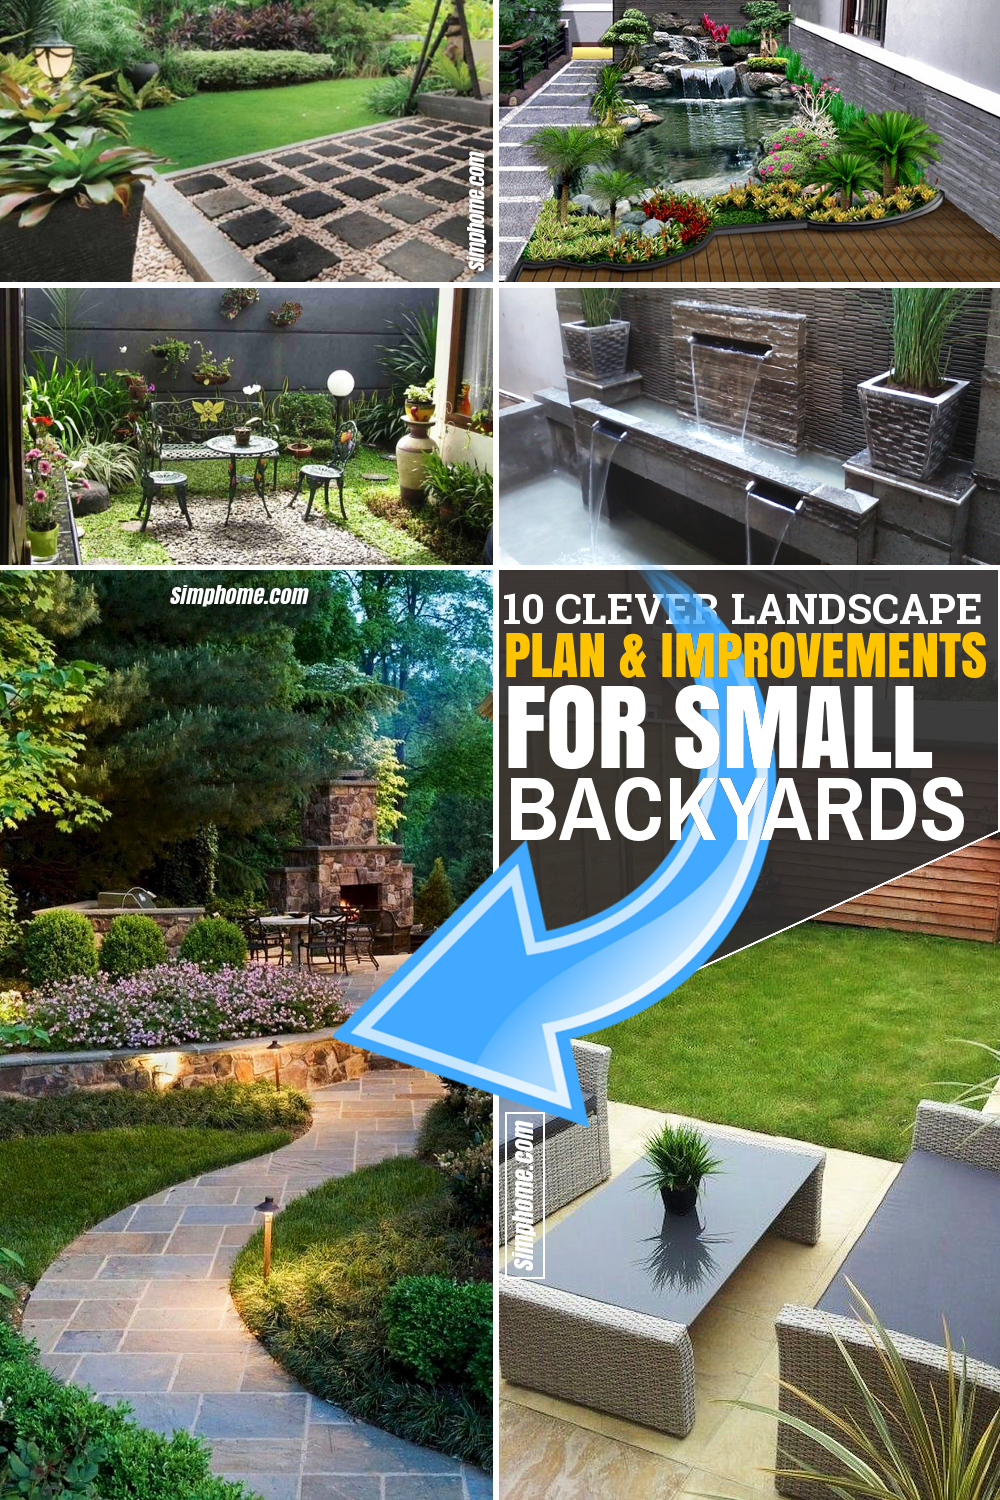 SIMPHOME.COM 10 Clever Landscape Design Plans and Improvements for a Small Backyard Featured Image